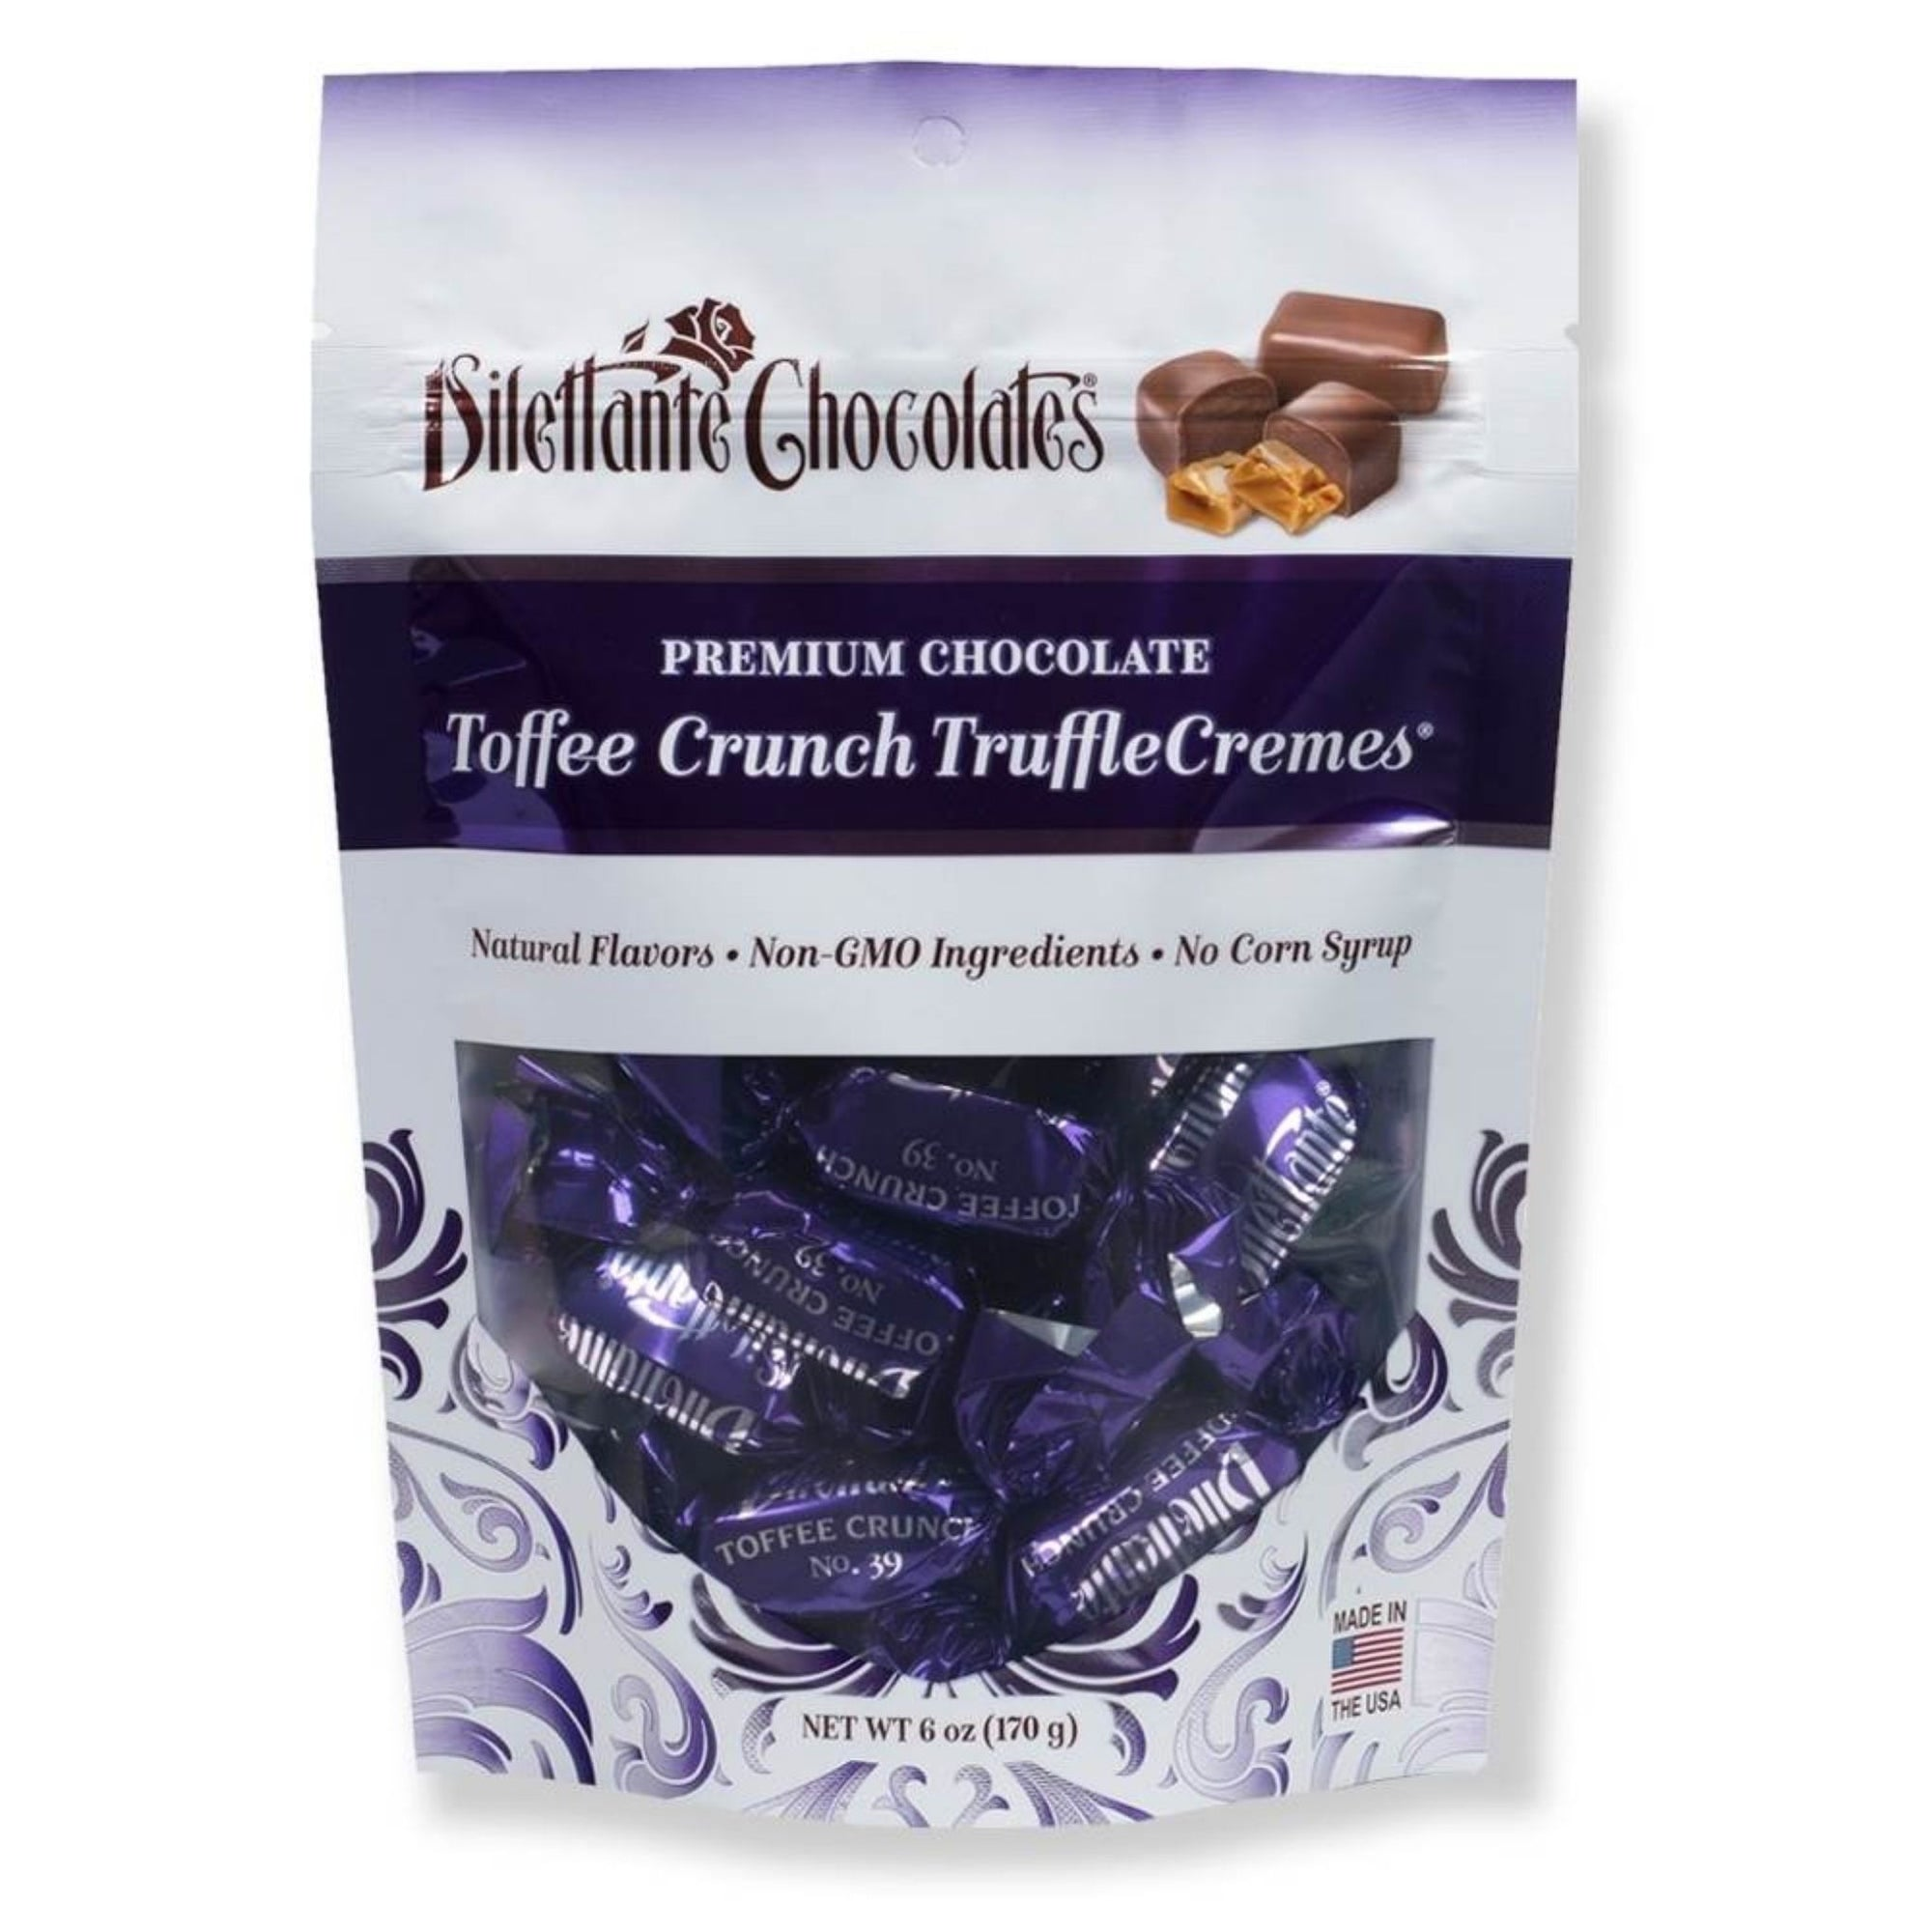 Dilettante Chocolates Premium Chocolate Toffee Crunch TruffleCremes Made with Natural Flavors Non-GMO Ingredients and No Corn Syrup